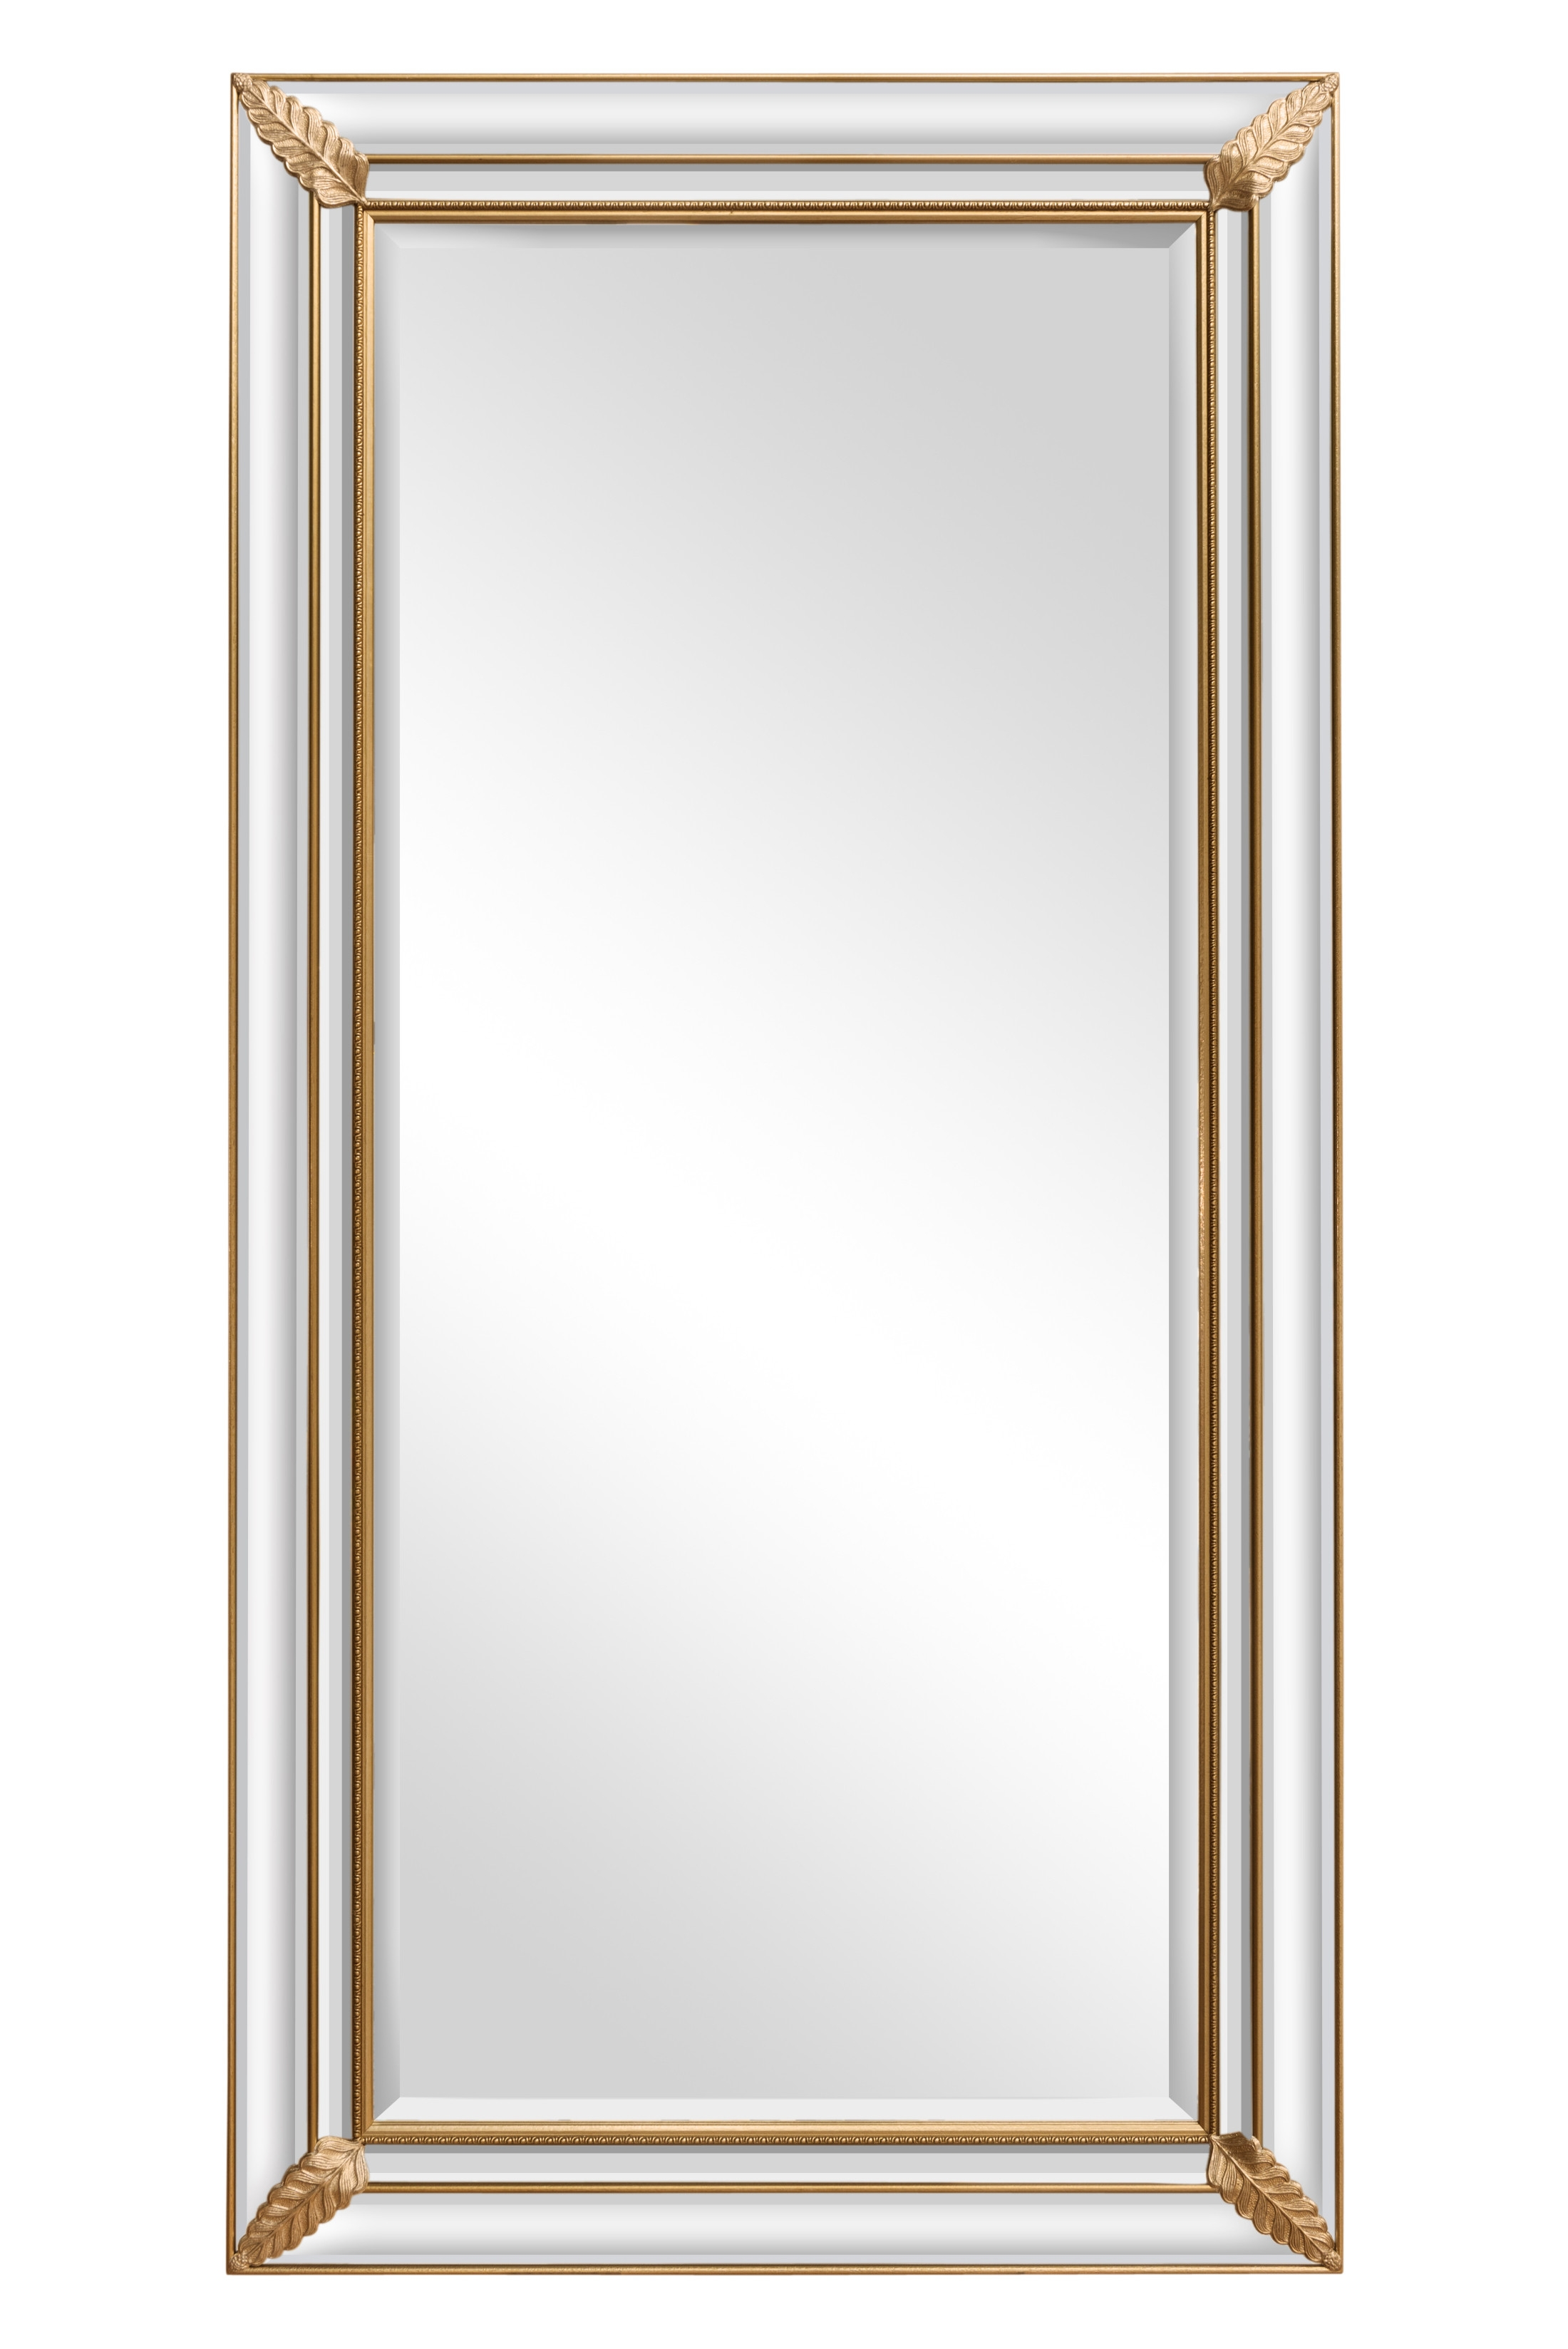 Bedroom Mirrors Mirrors For Sale Panfili Mirrors Interiors Pertaining To Long Mirrors For Sale (Photo 5 of 15)